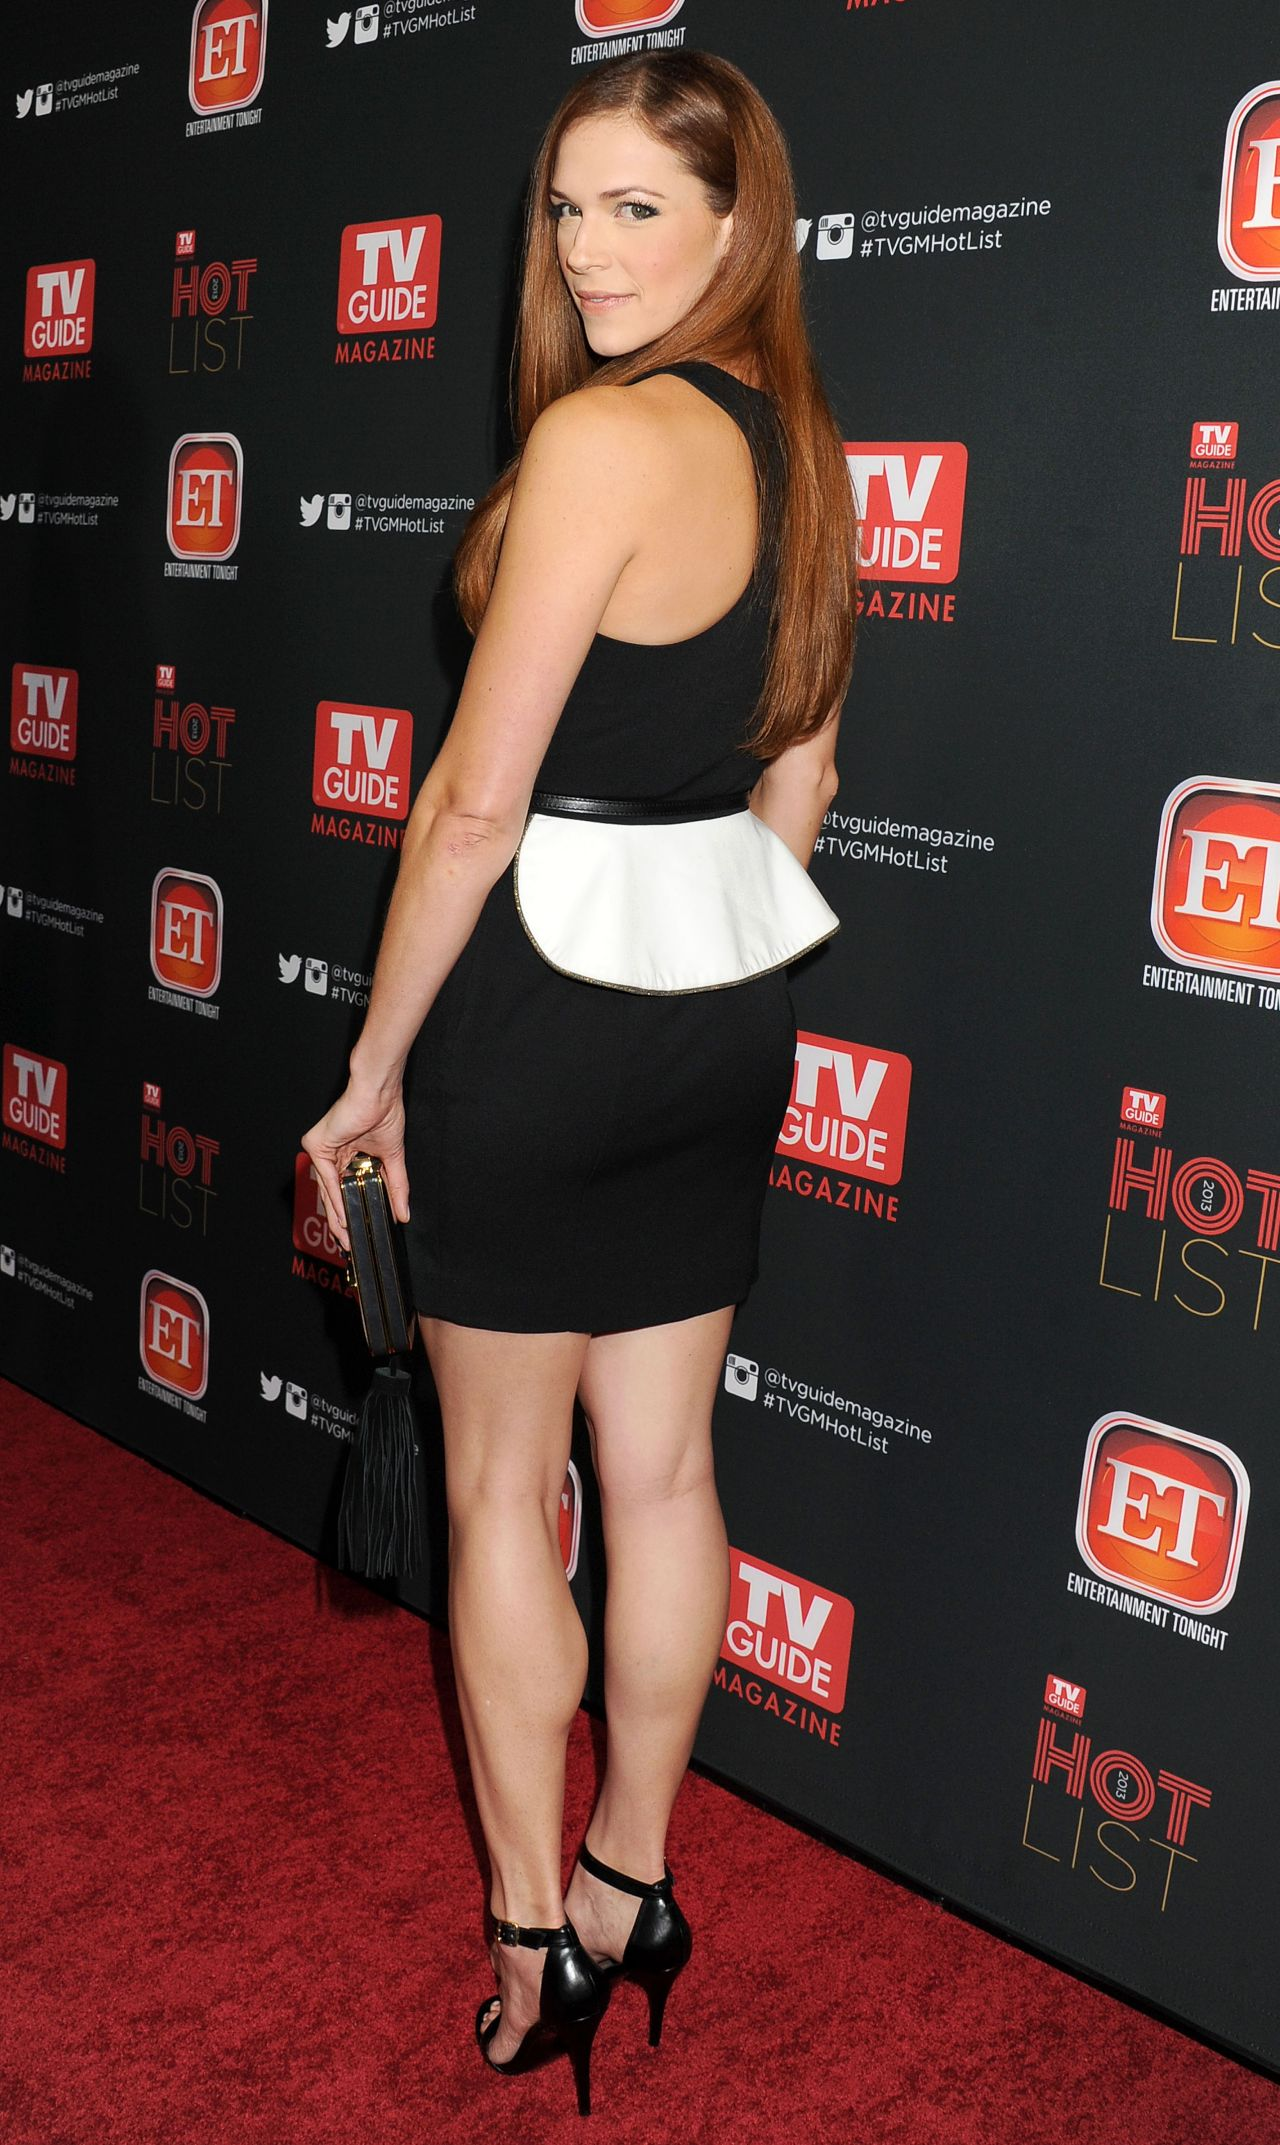 http://celebmafia.com/wp-content/uploads/2013/11/amanda-righetti-on-red-carpet-tv-guide-magazine-s-hot-list-party-2013_5.jpg